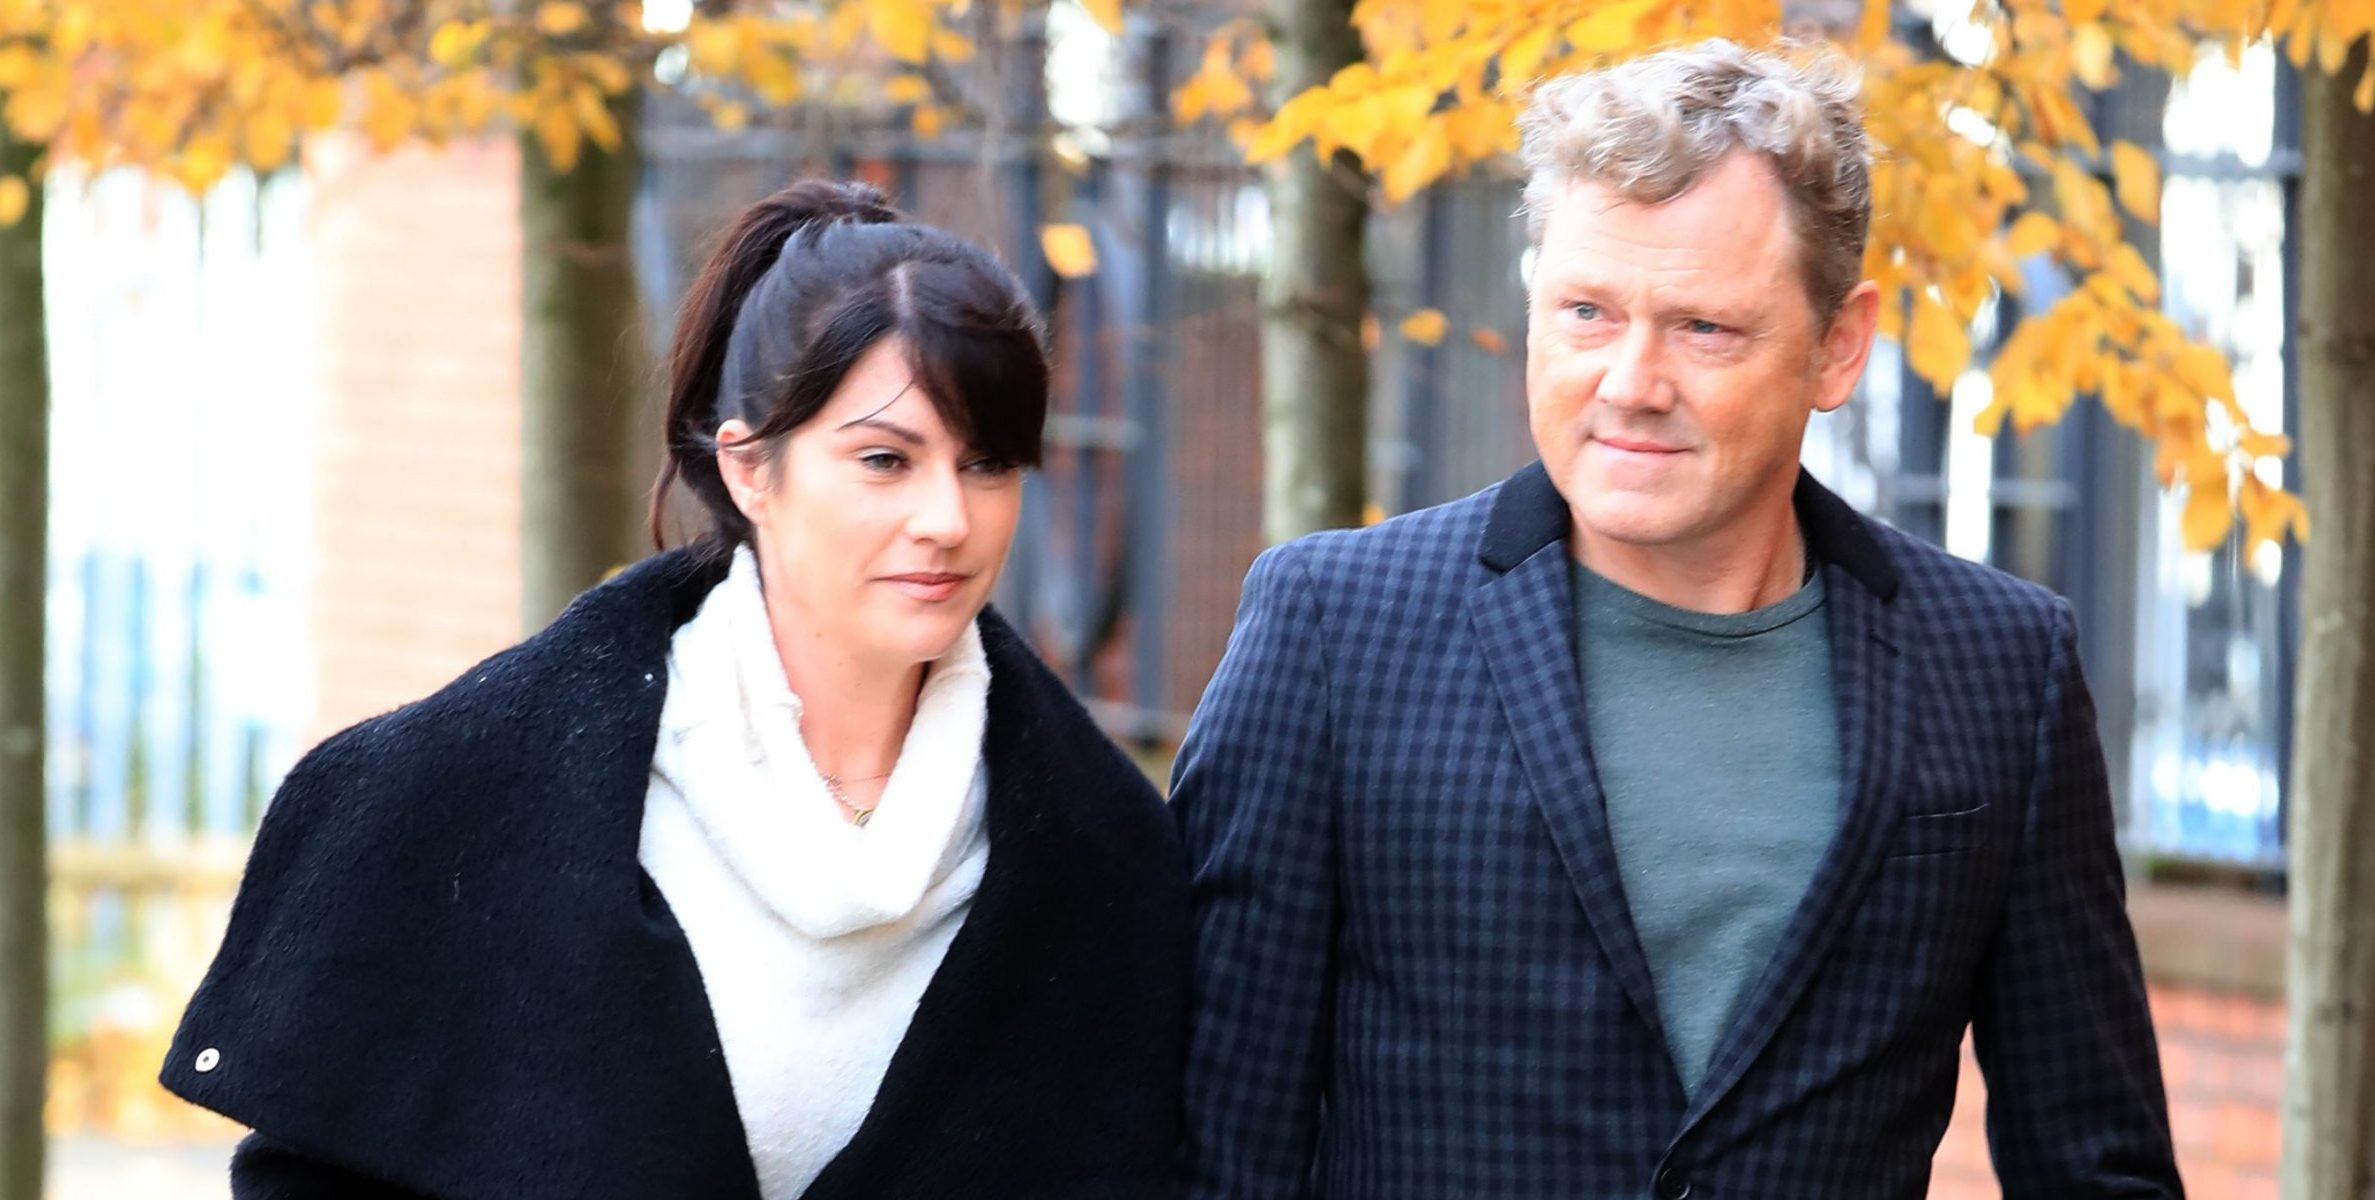 RETRANSMISSION ADDING ADDITIONAL NAME TO CAPTION Emmerdale actor Mark Jordon, 53, who plays Daz Spencer in the Yorkshire-based soap, arrives at Tameside Magistrates' Court, in Ashton-under-Lyne, where he is charged with grievous bodily harm and assault. PRESS ASSOCIATION Photo. Picture date: Thursday November 8, 2018. The actor, who also starred in TV series Heartbeat, is charged with the alleged attack on a pensioner, aged 67, in Oldham on the evening of July 1. See PA story COURTS Jordon. Photo credit should read: Peter Byrne/PA Wire